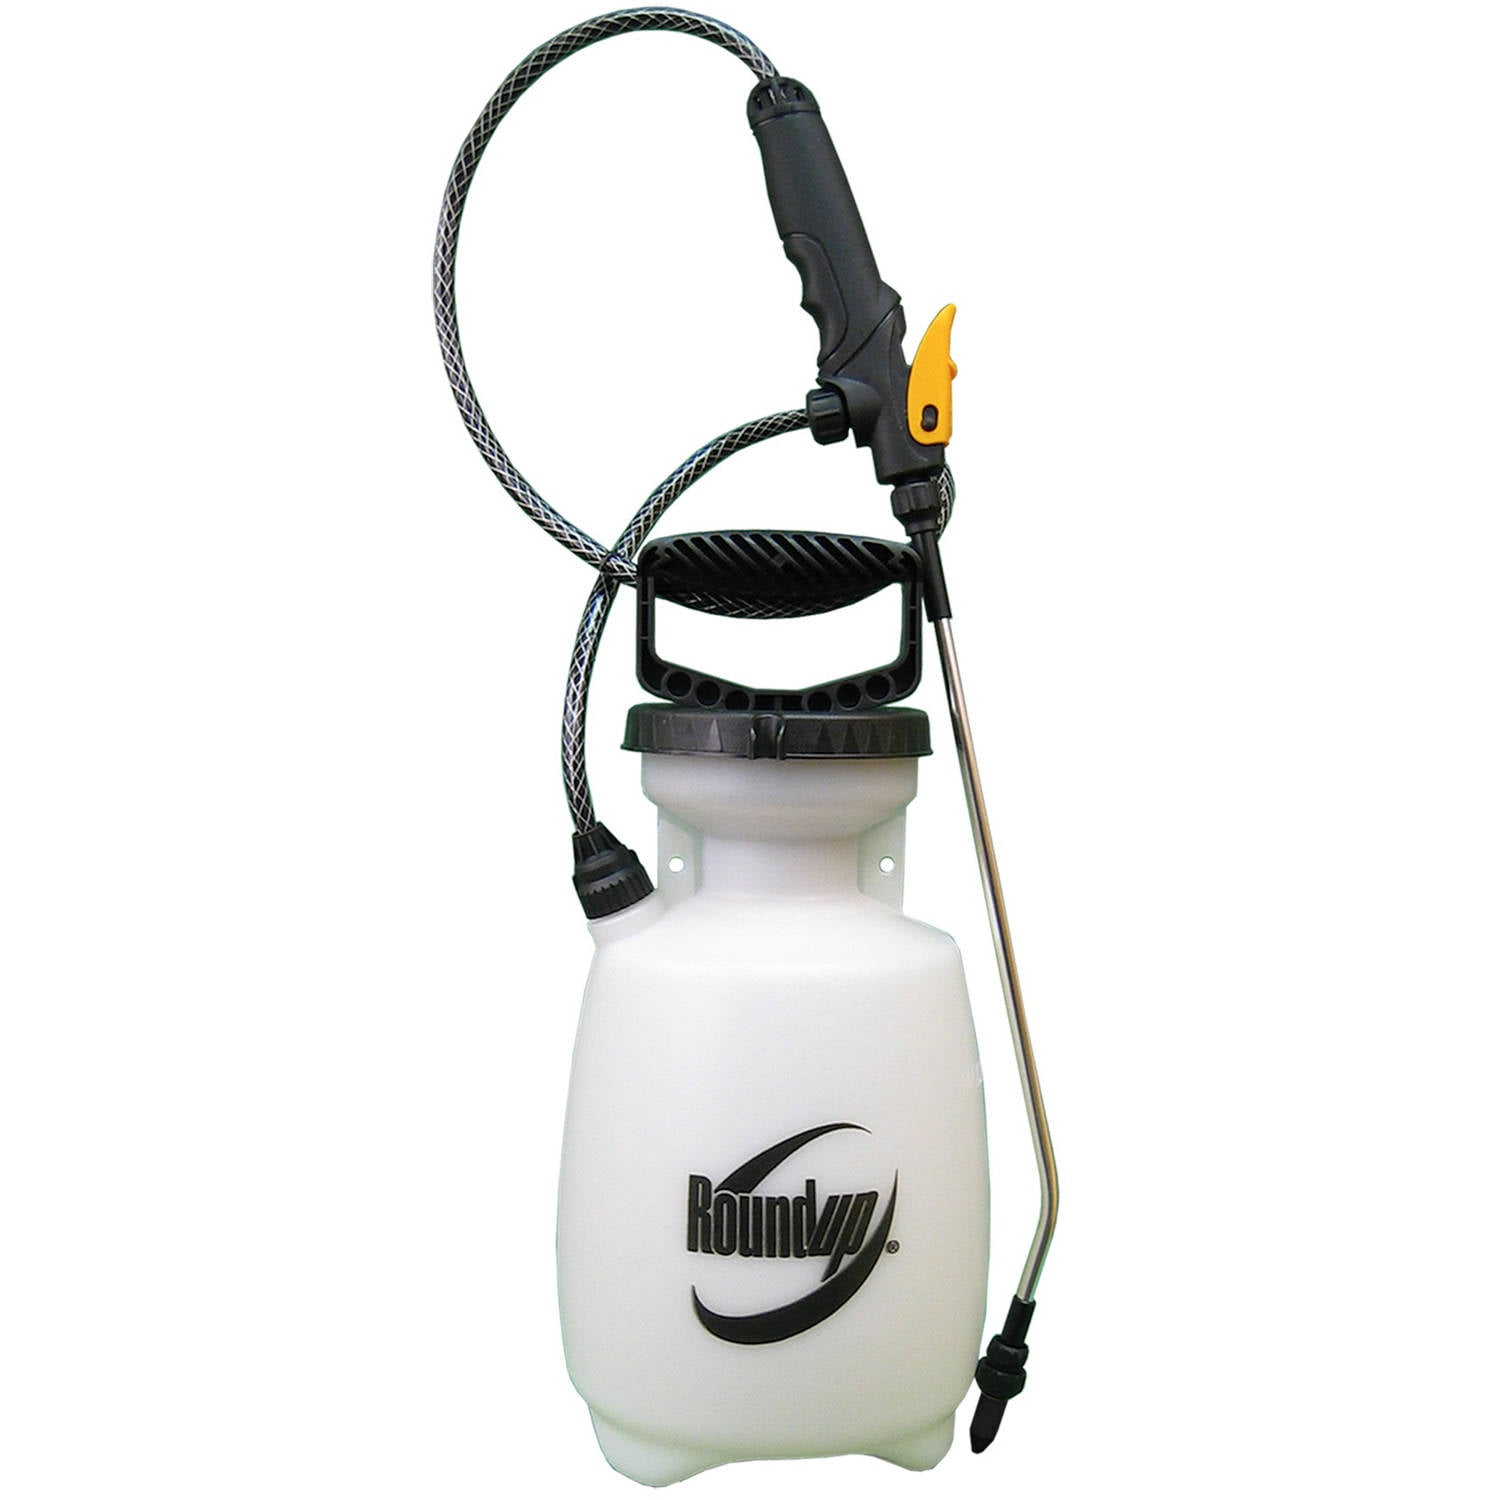 Roundup 1-Gallon Premium Sprayer by BURGESS PRODUCTS, INC